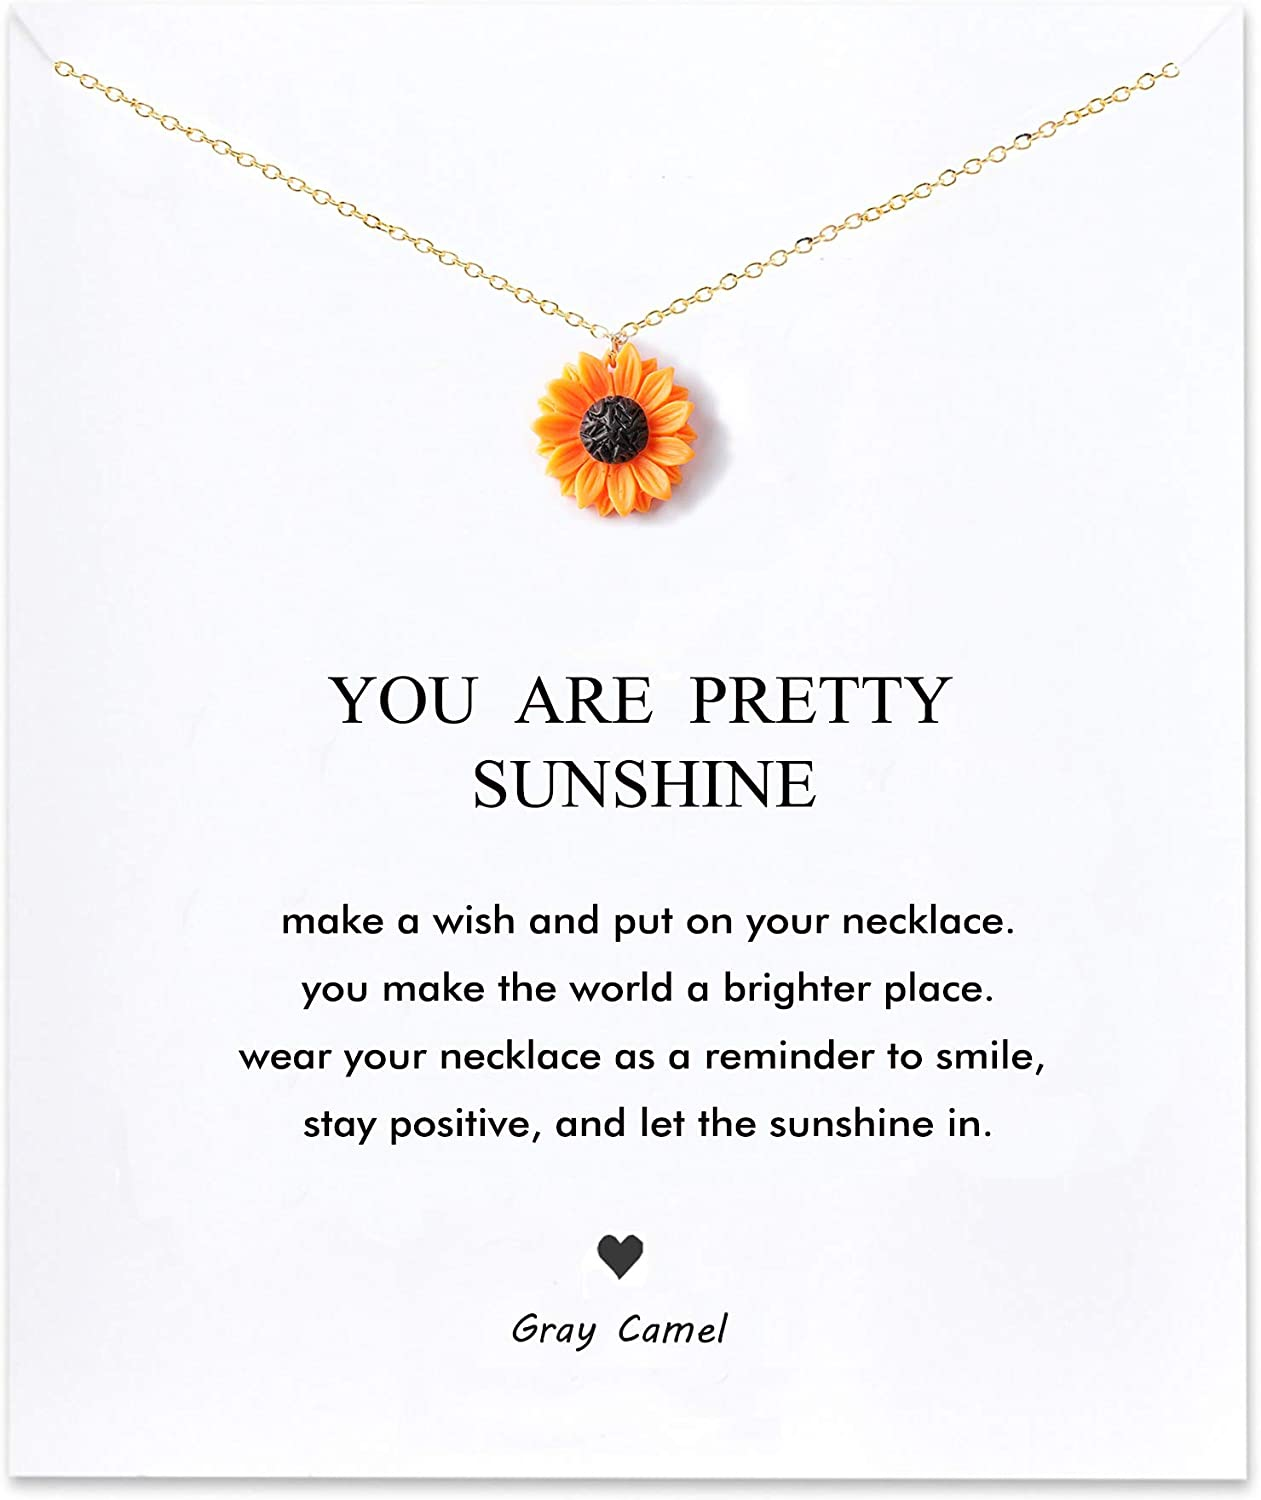 Gray Camel Sunflower Necklace You Are My Sunshine Carving Necklace for Woman Girl Card necklace Gift Necklace